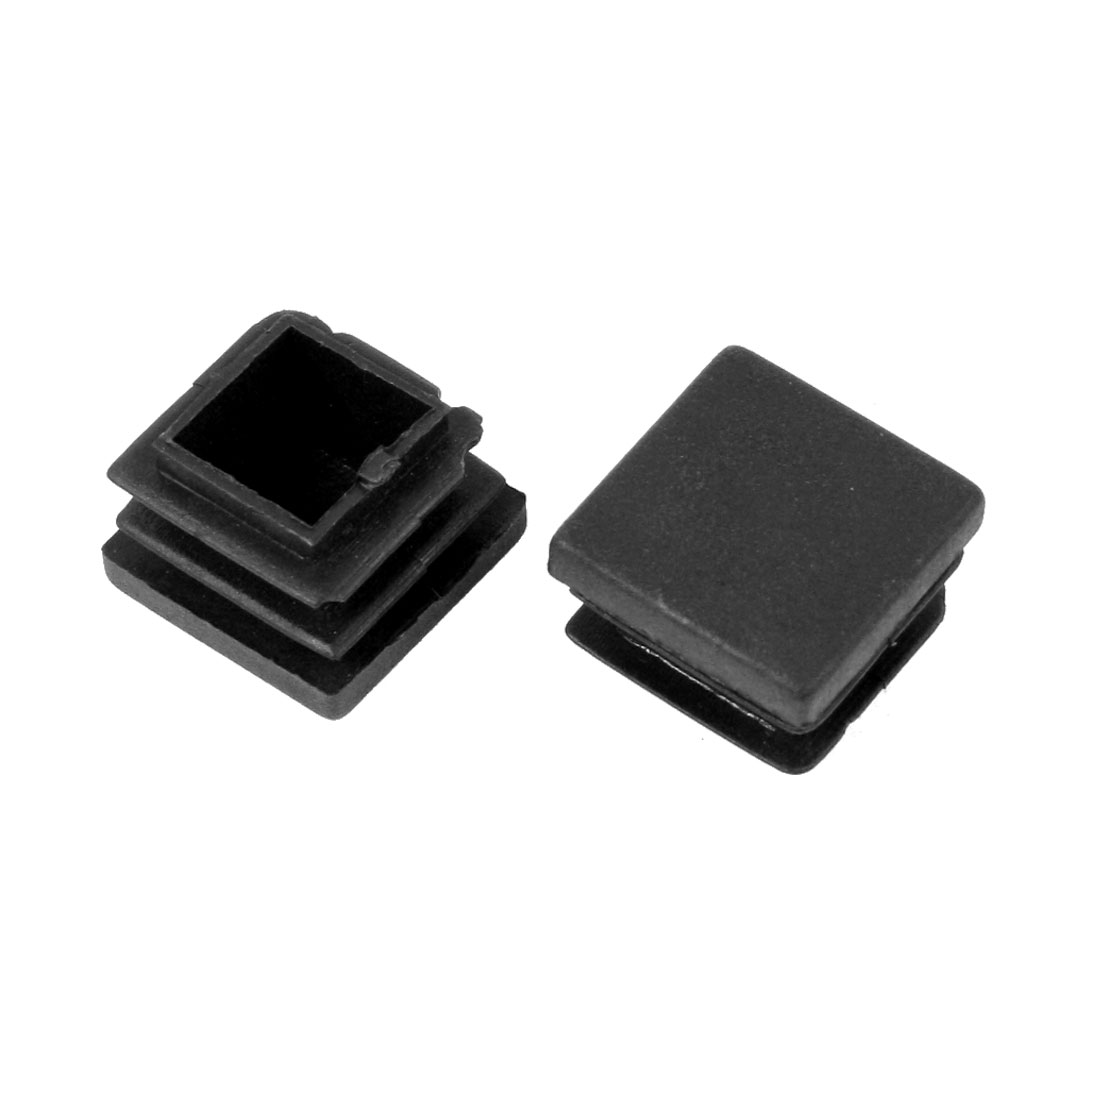 2 Pieces Black Plastic Square Blanking End Caps Tubing Tube Inserts 22mm x 22mm